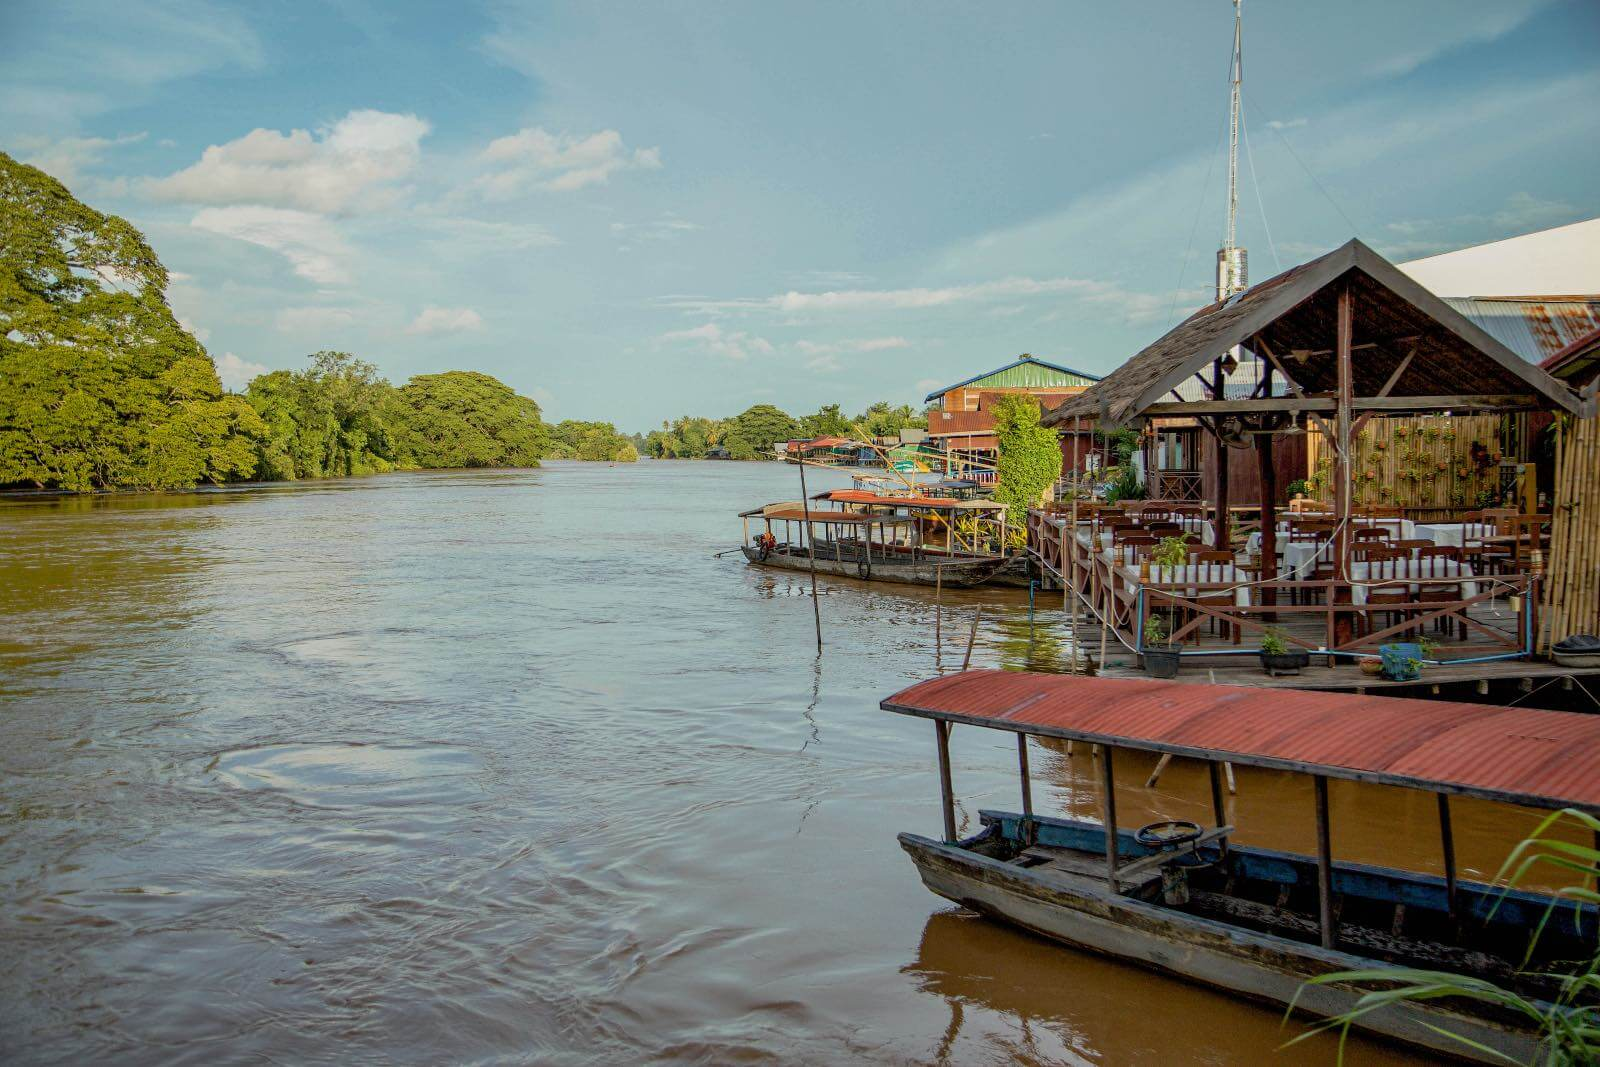 Houses on the water in Don Det, Laos